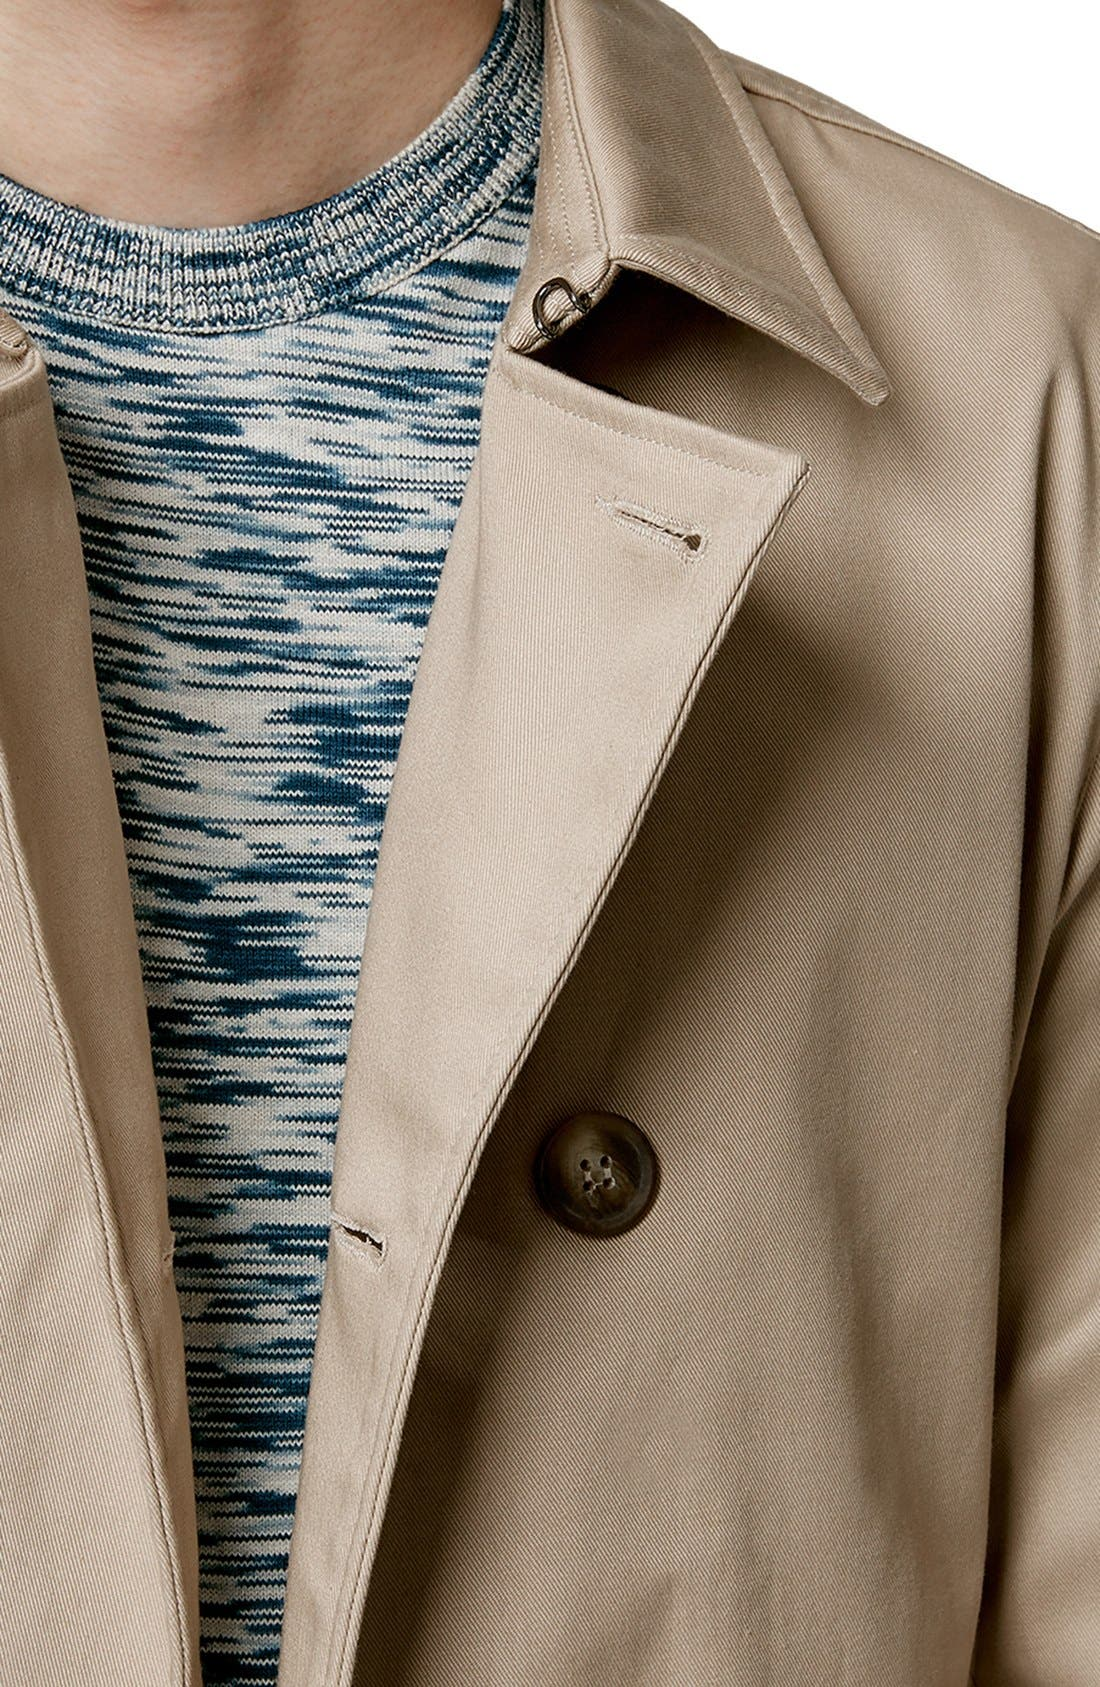 Double Breasted Trench Coat,                             Alternate thumbnail 4, color,                             250